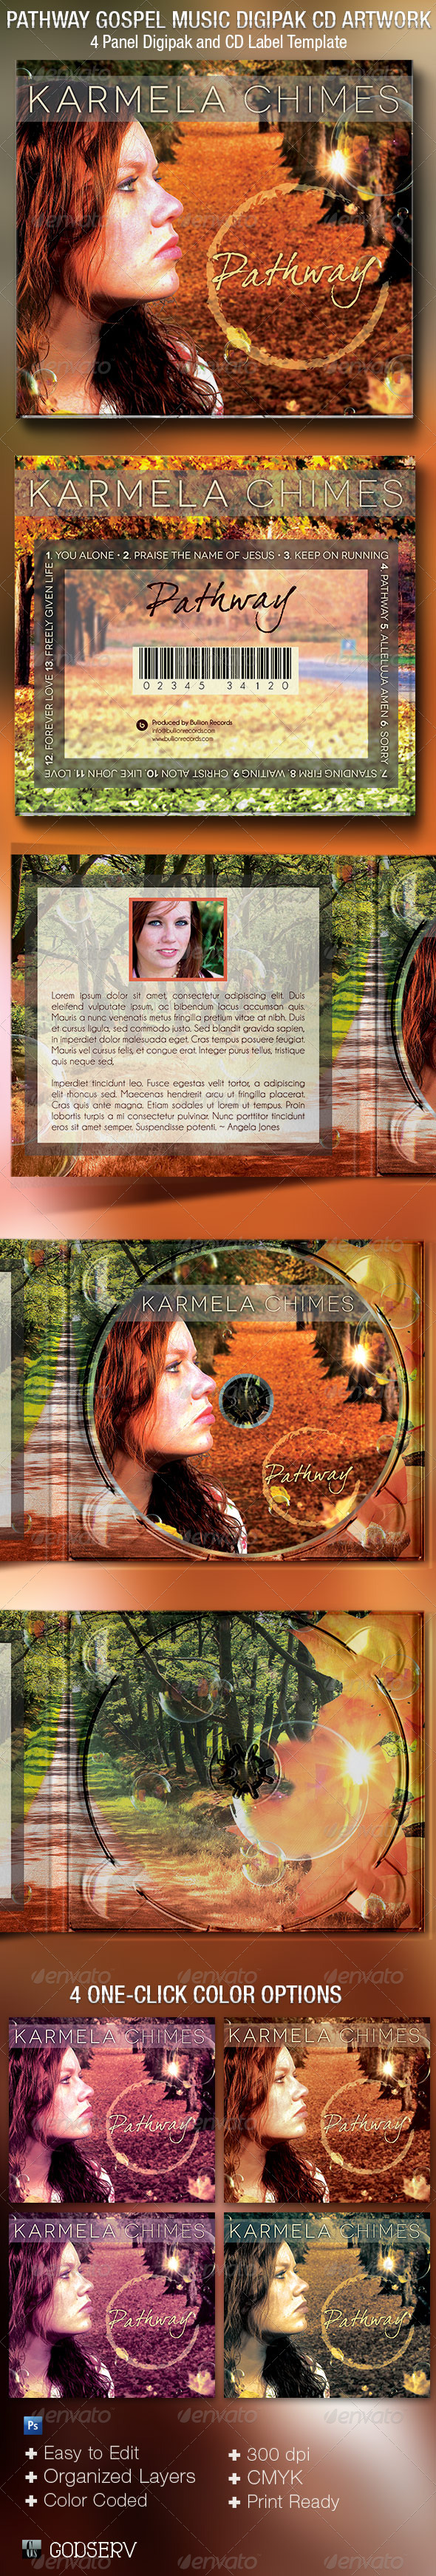 GraphicRiver Pathway Gospel Music 4 Panel Digipak CD Template 5456606